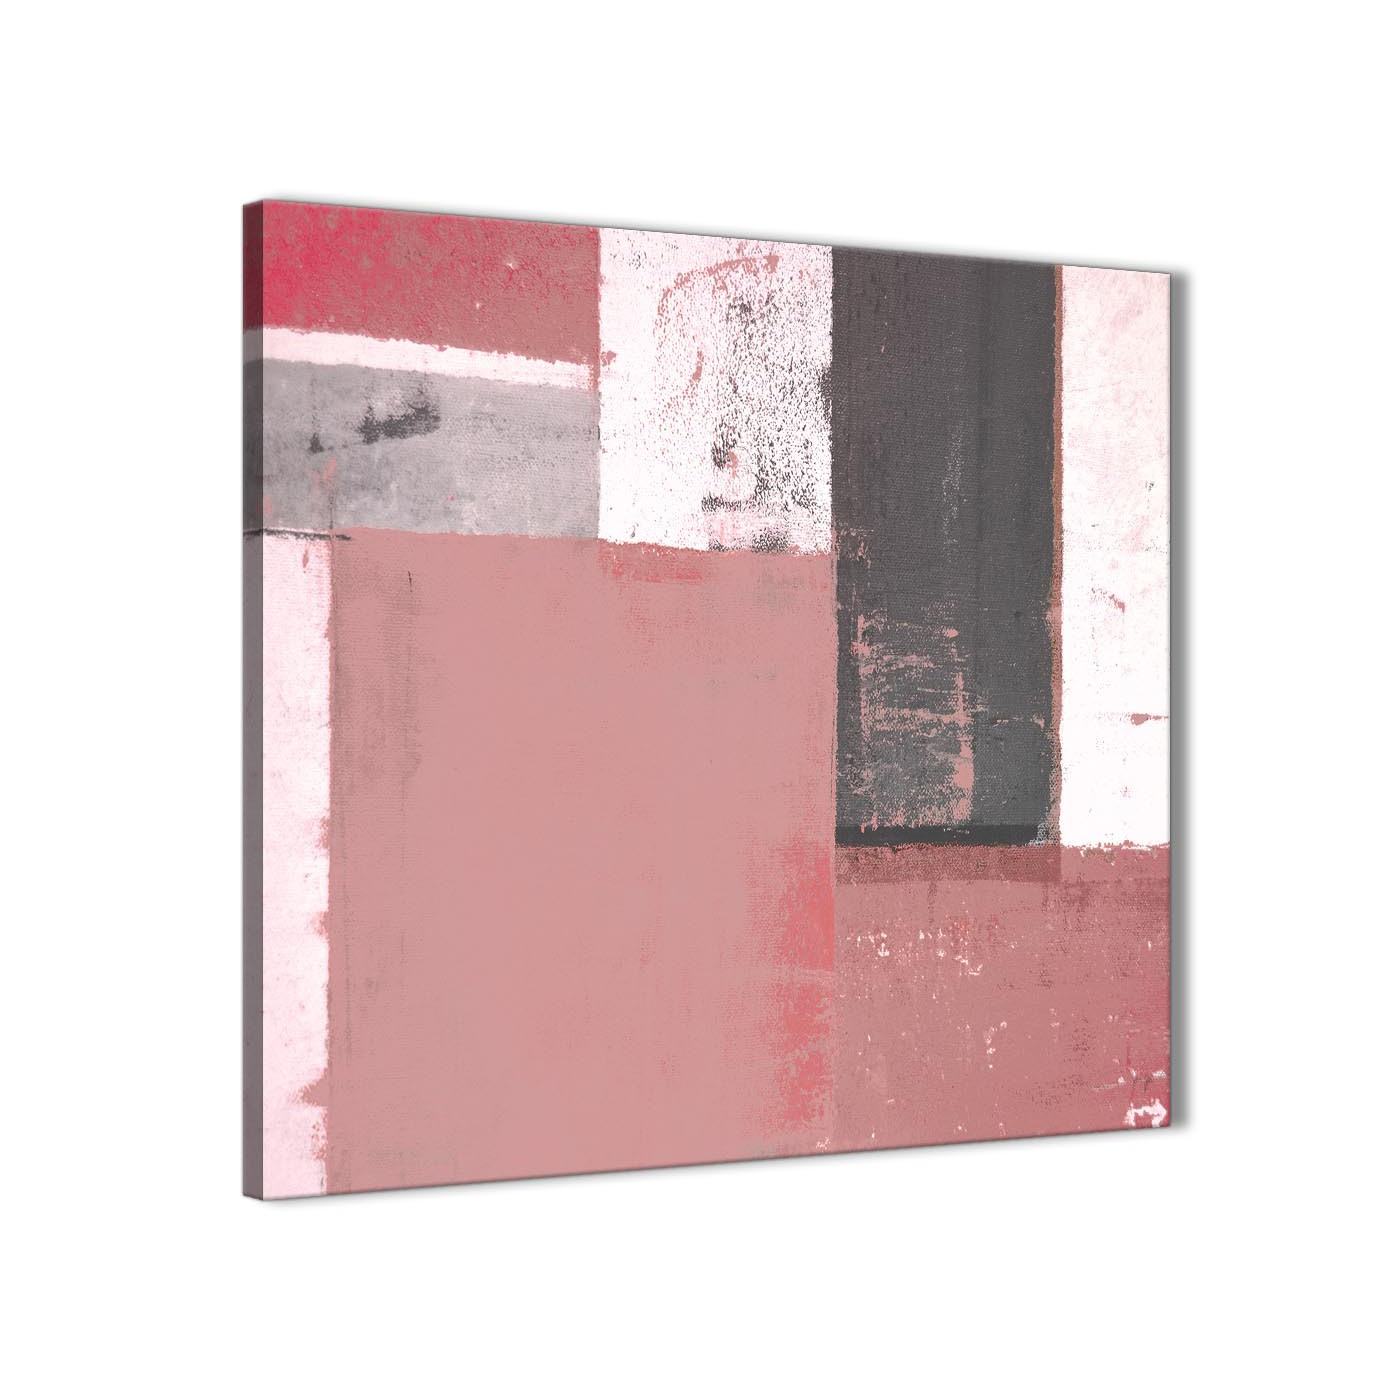 Blush pink grey abstract painting canvas wall art print modern 49cm square 1s334s